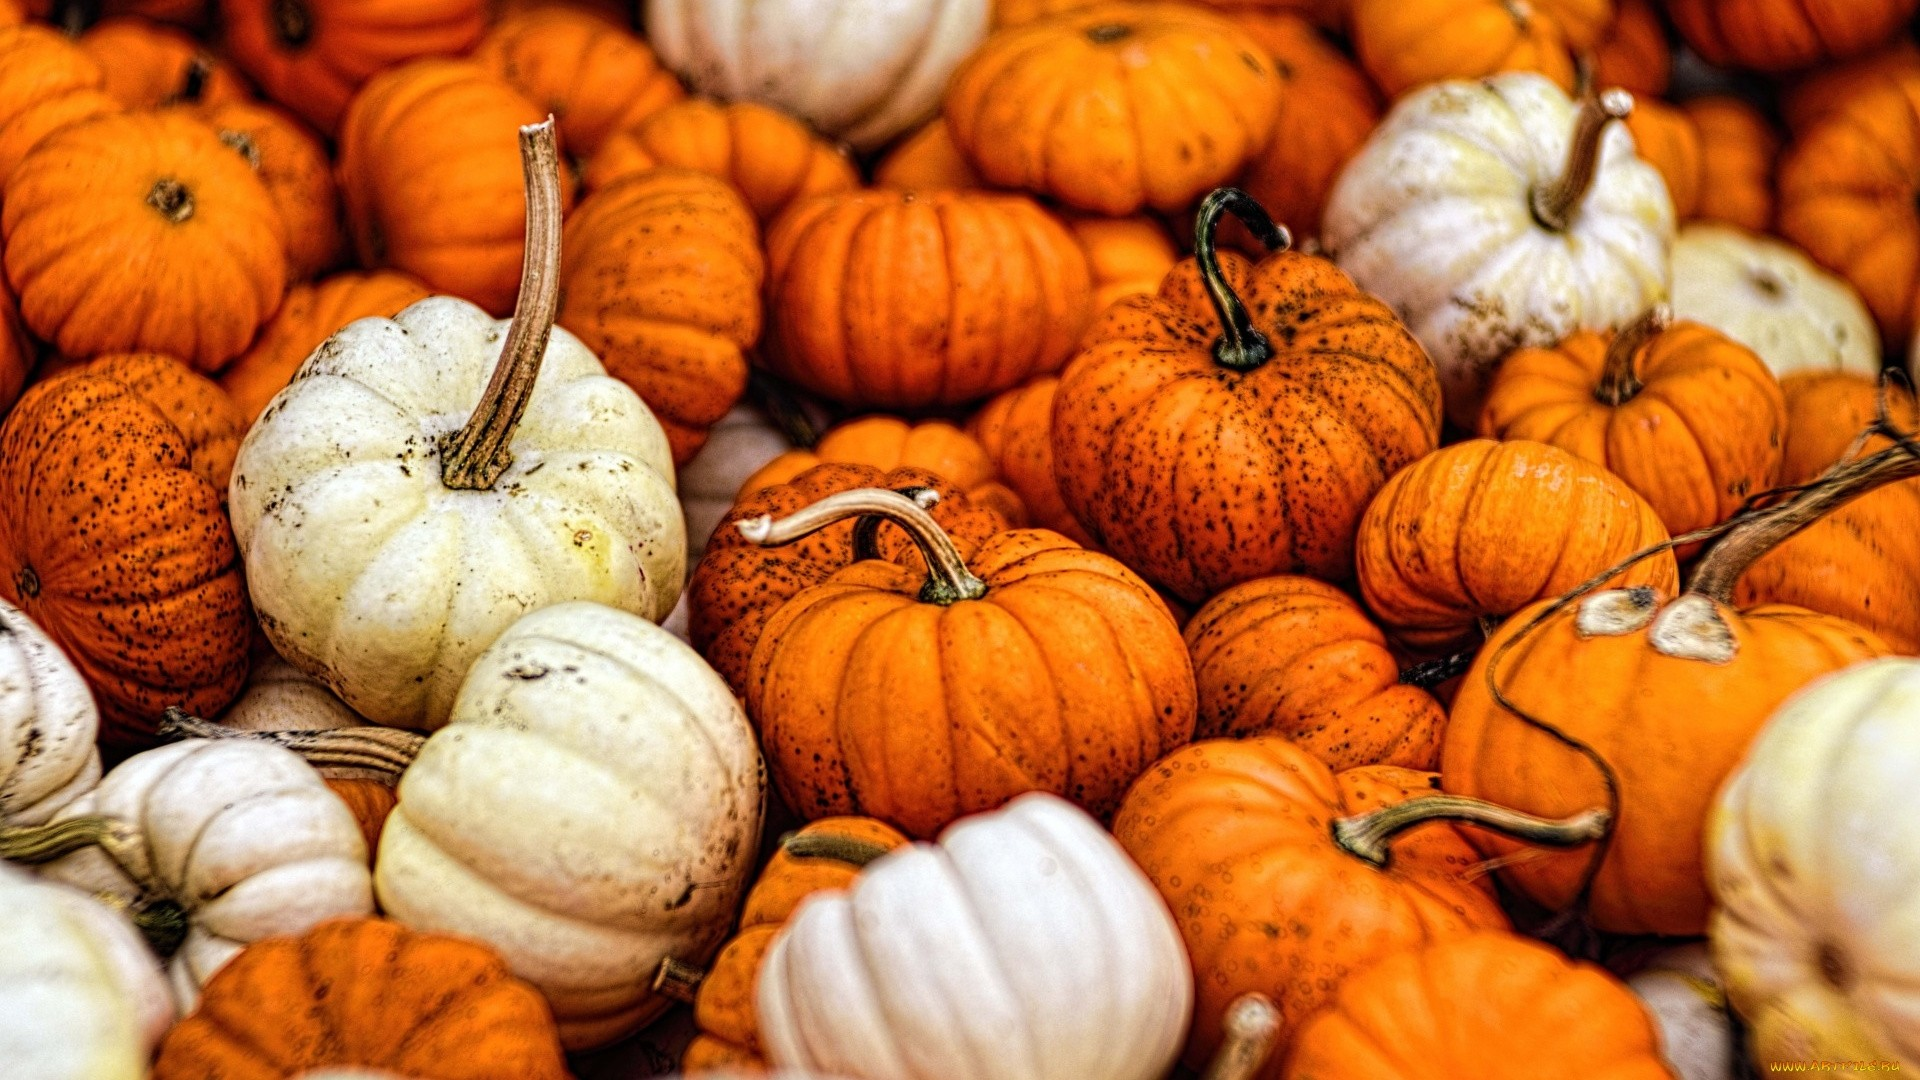 Pumpkin Free Wallpaper and Background